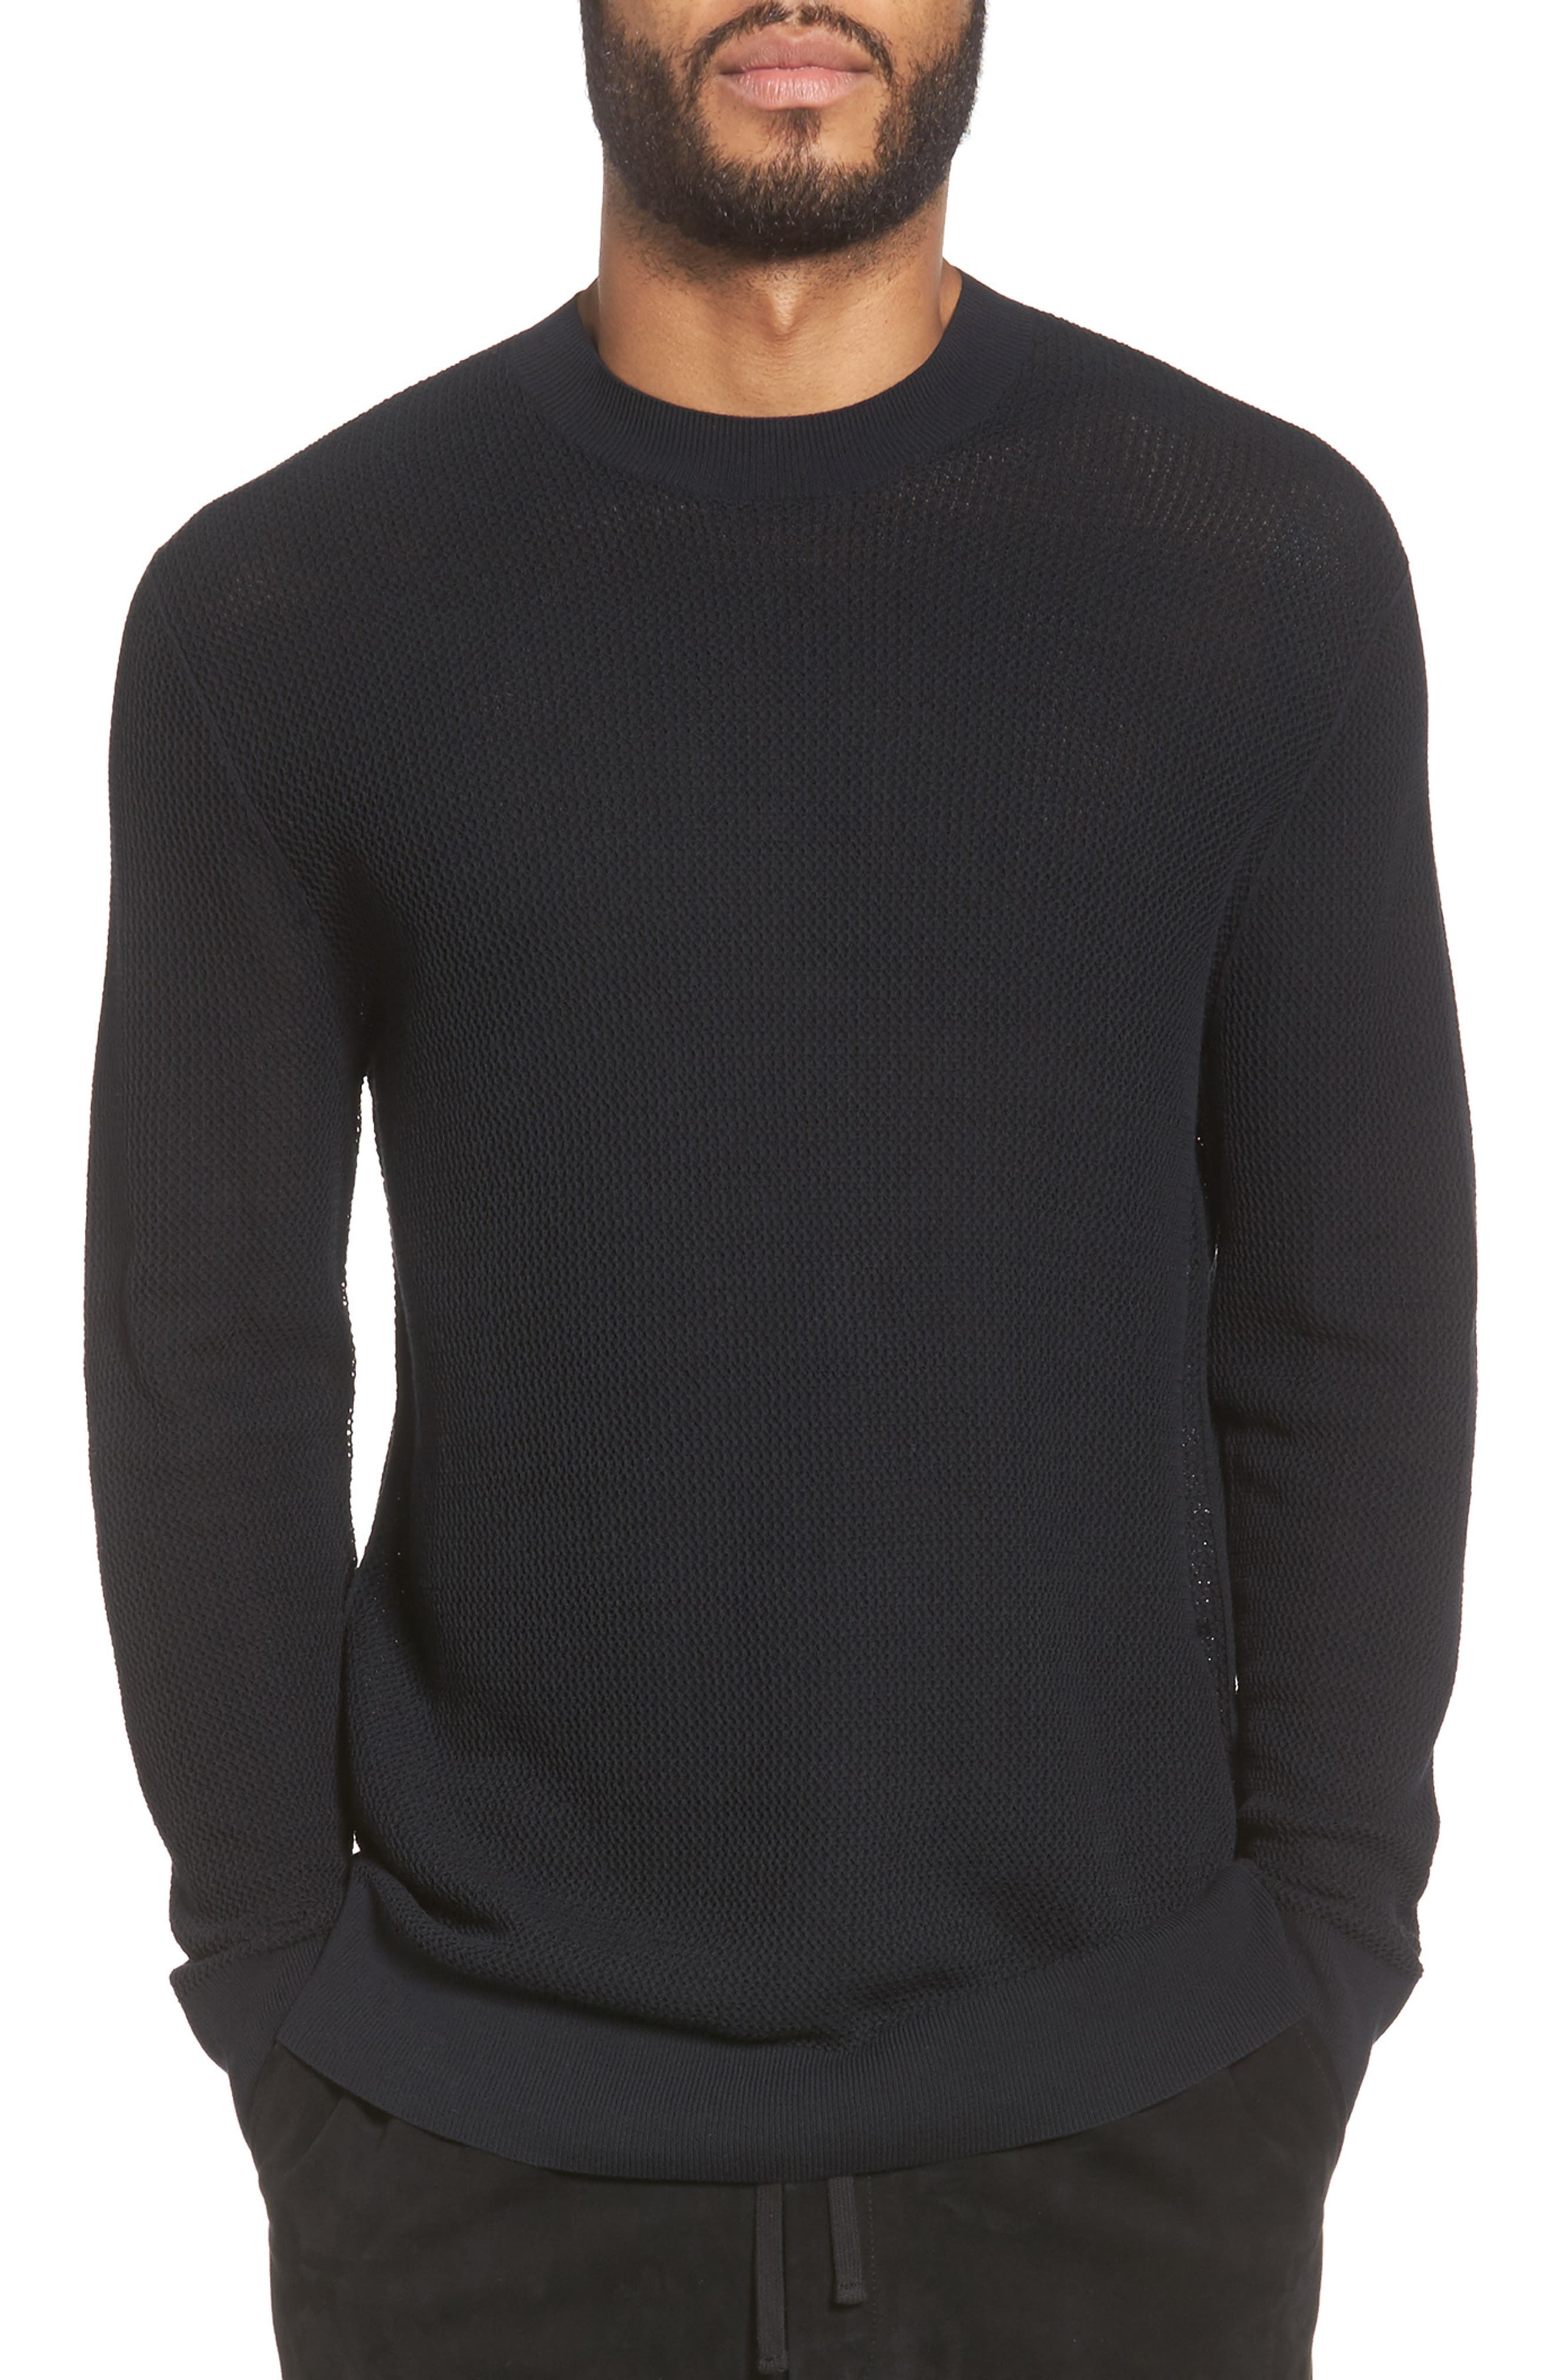 Mesh Crewneck Sweater,                             Main thumbnail 1, color,                             001